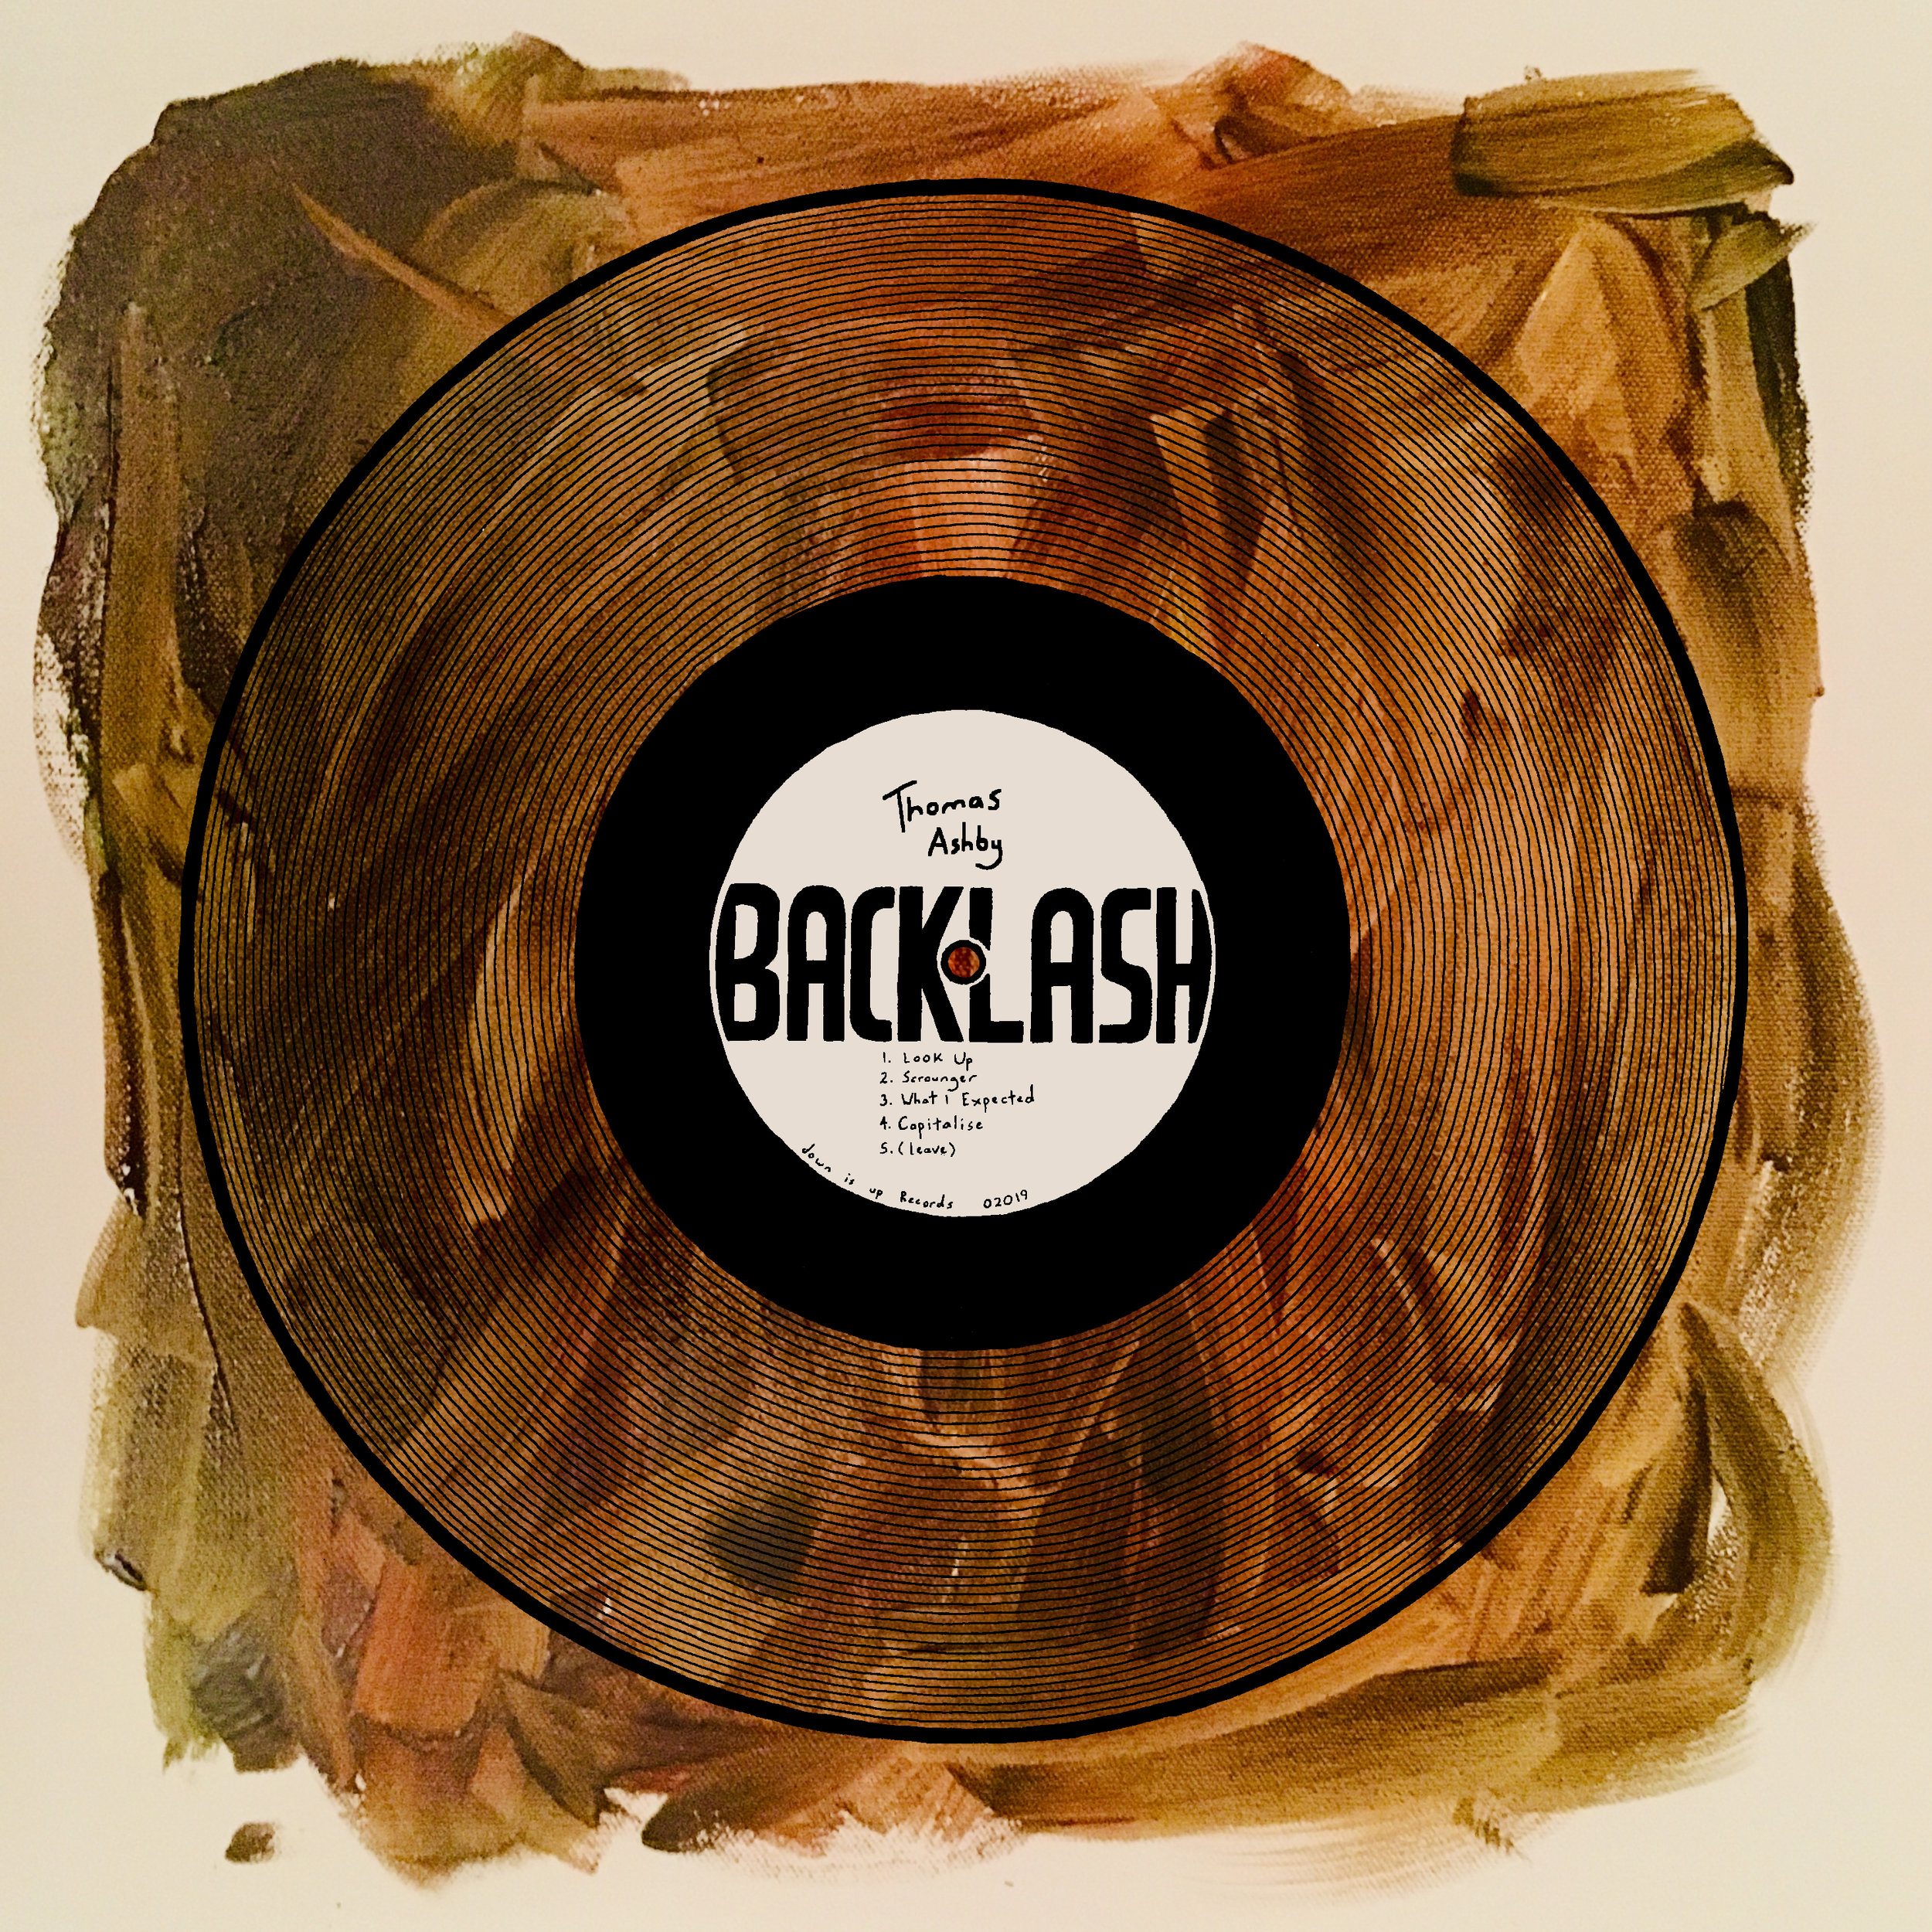 """BACKLASH EP - Released 31st May 2019Genre: Jazzy Folk & Blues.Featuring the singles, """"Look Up"""", """"Scrounger"""", and """"What I Expected""""."""